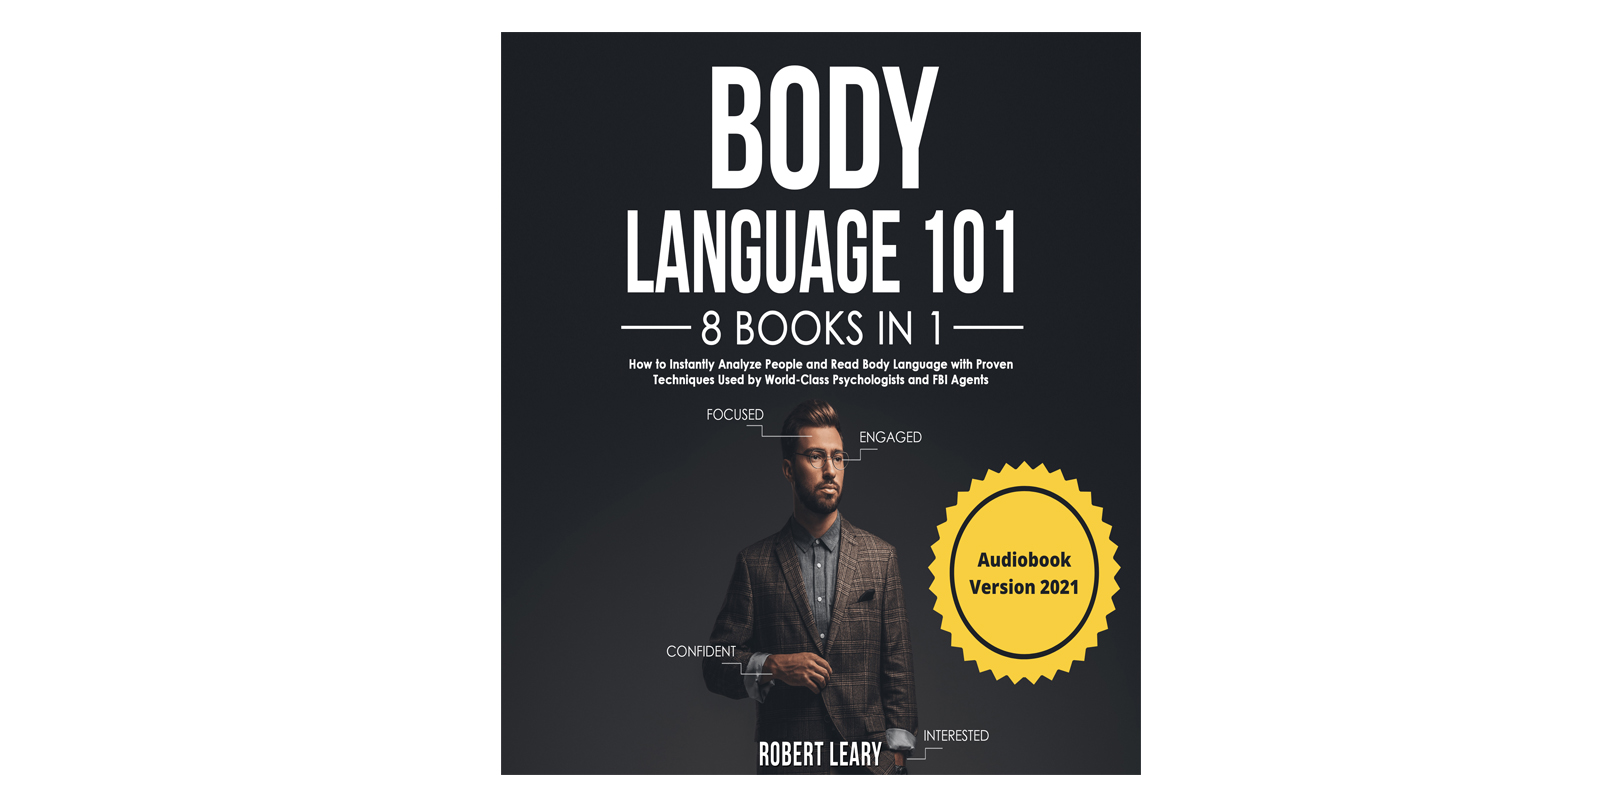 Body Language 101 Reviews